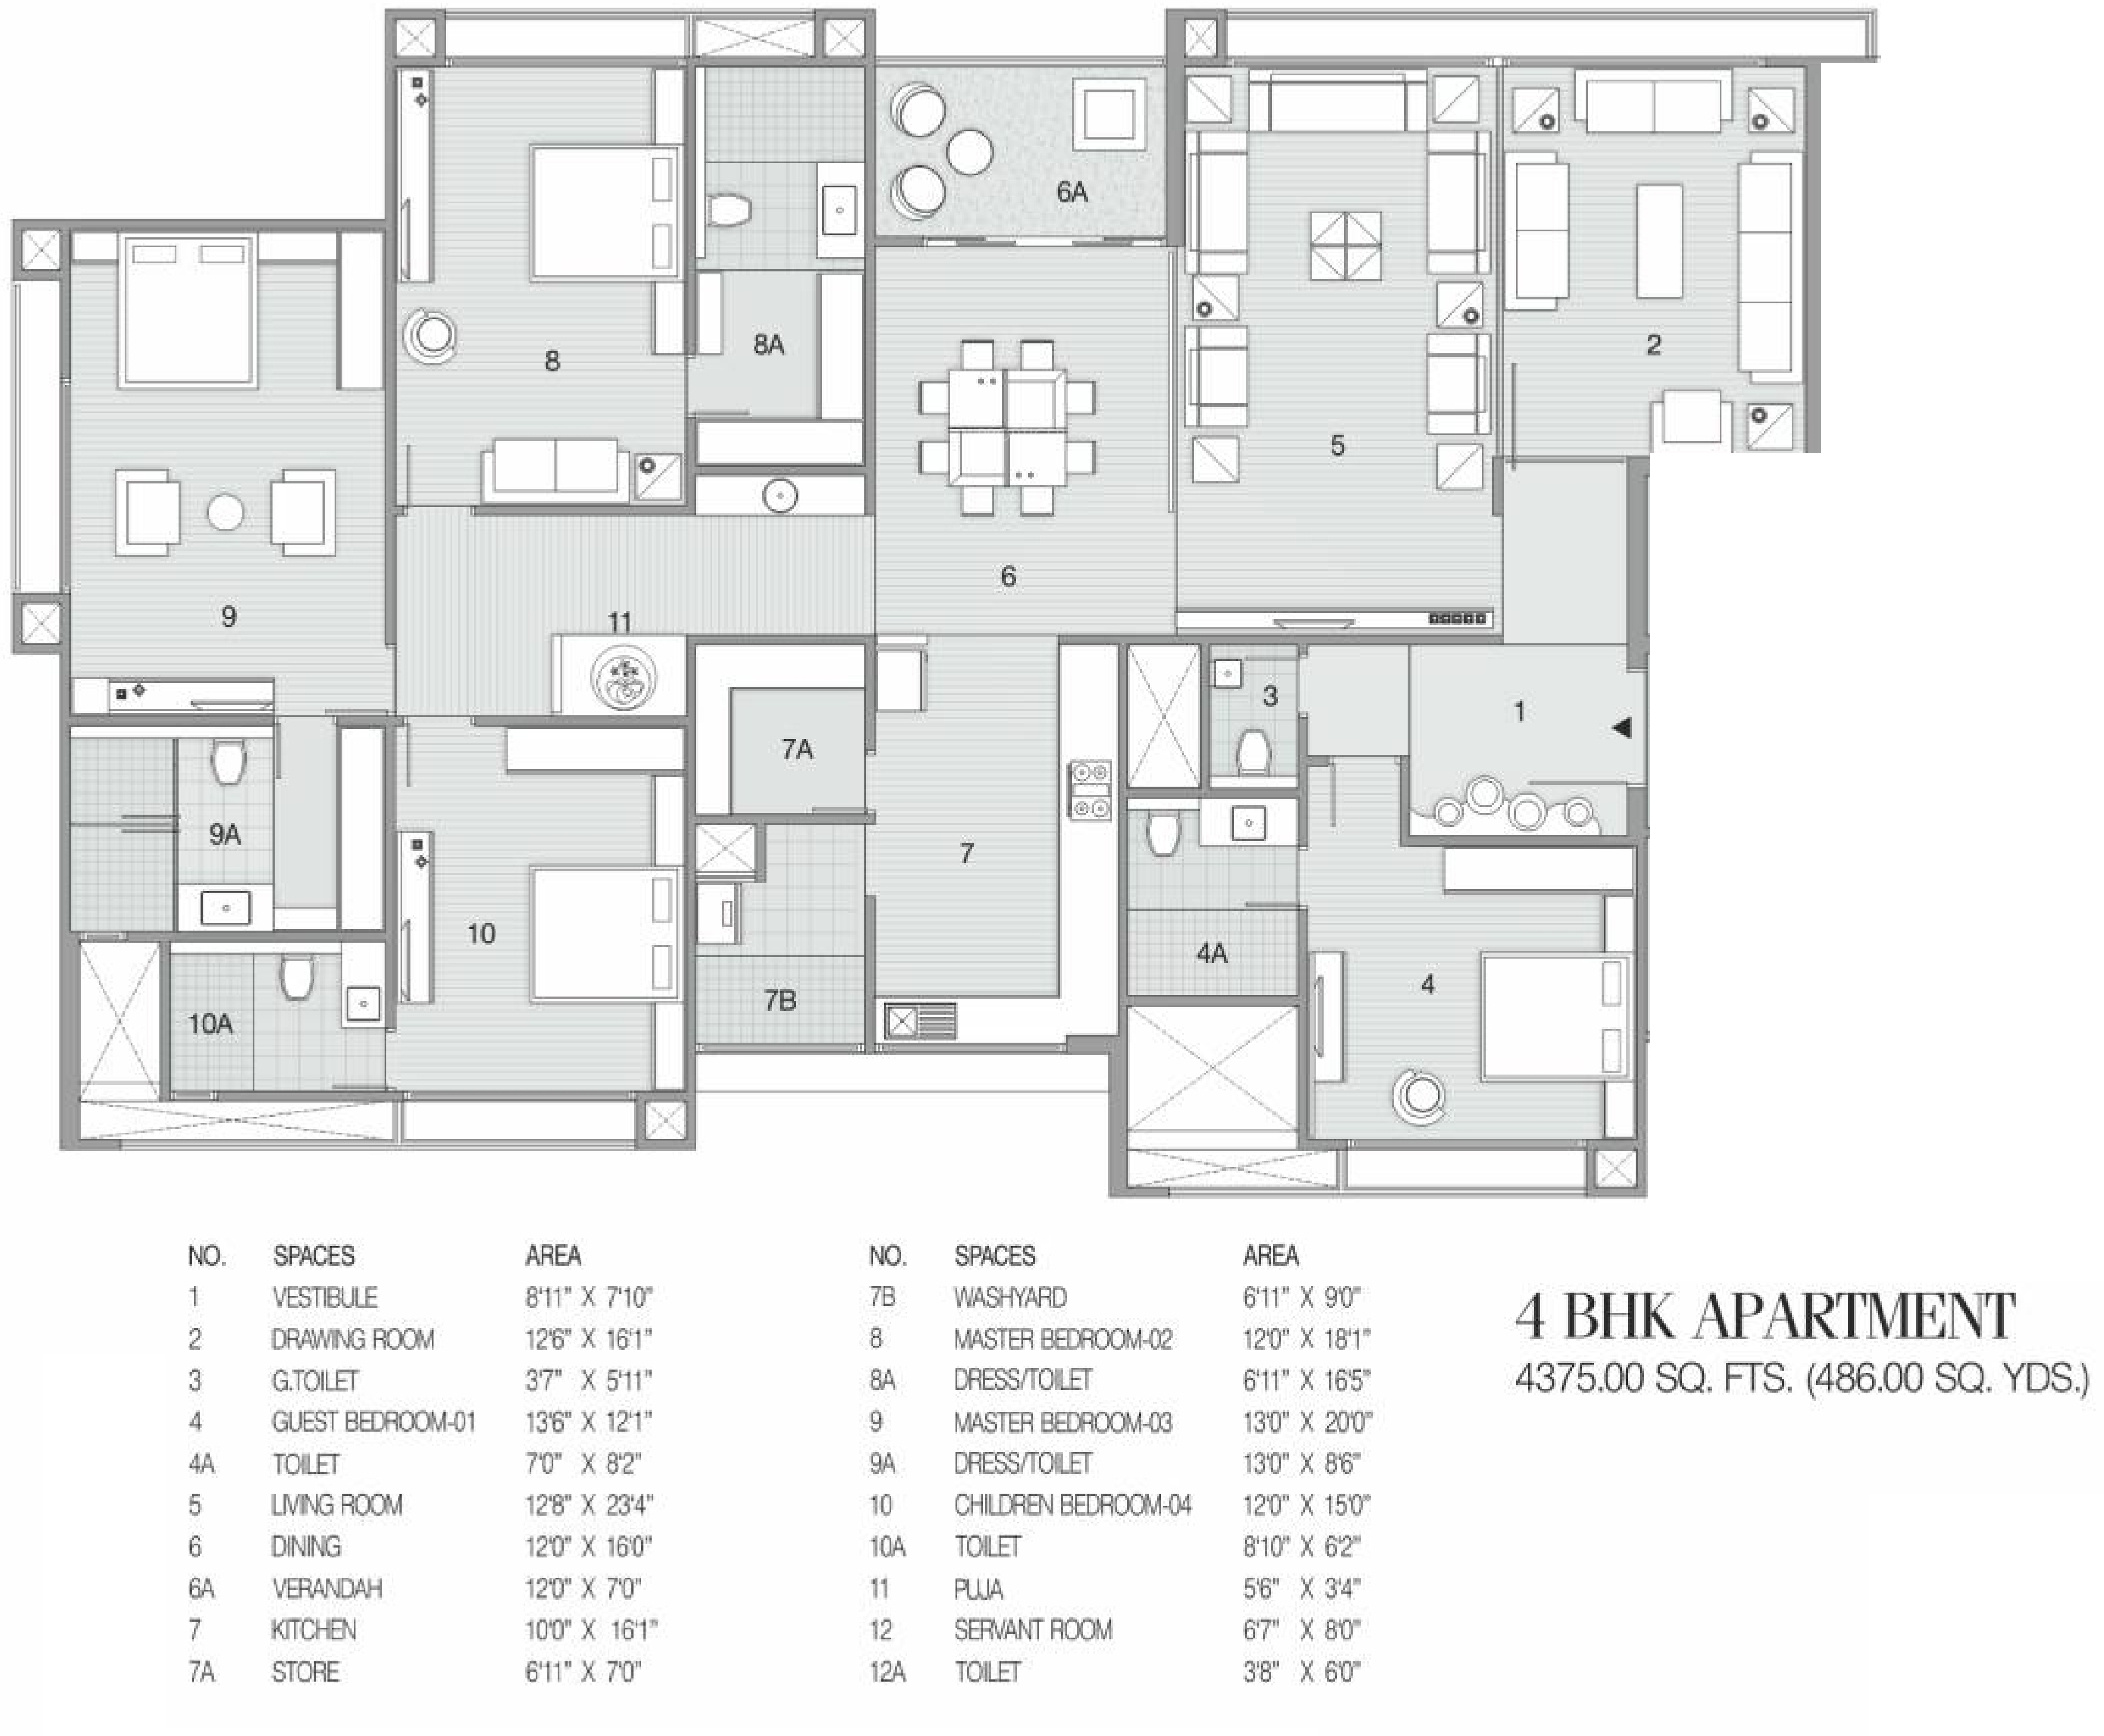 residences floor plan floor plan 3770006?width\=90\&height\=120 john deere 445 wiring diagram wiring diagram and schematic design z225 wiring diagram at panicattacktreatment.co